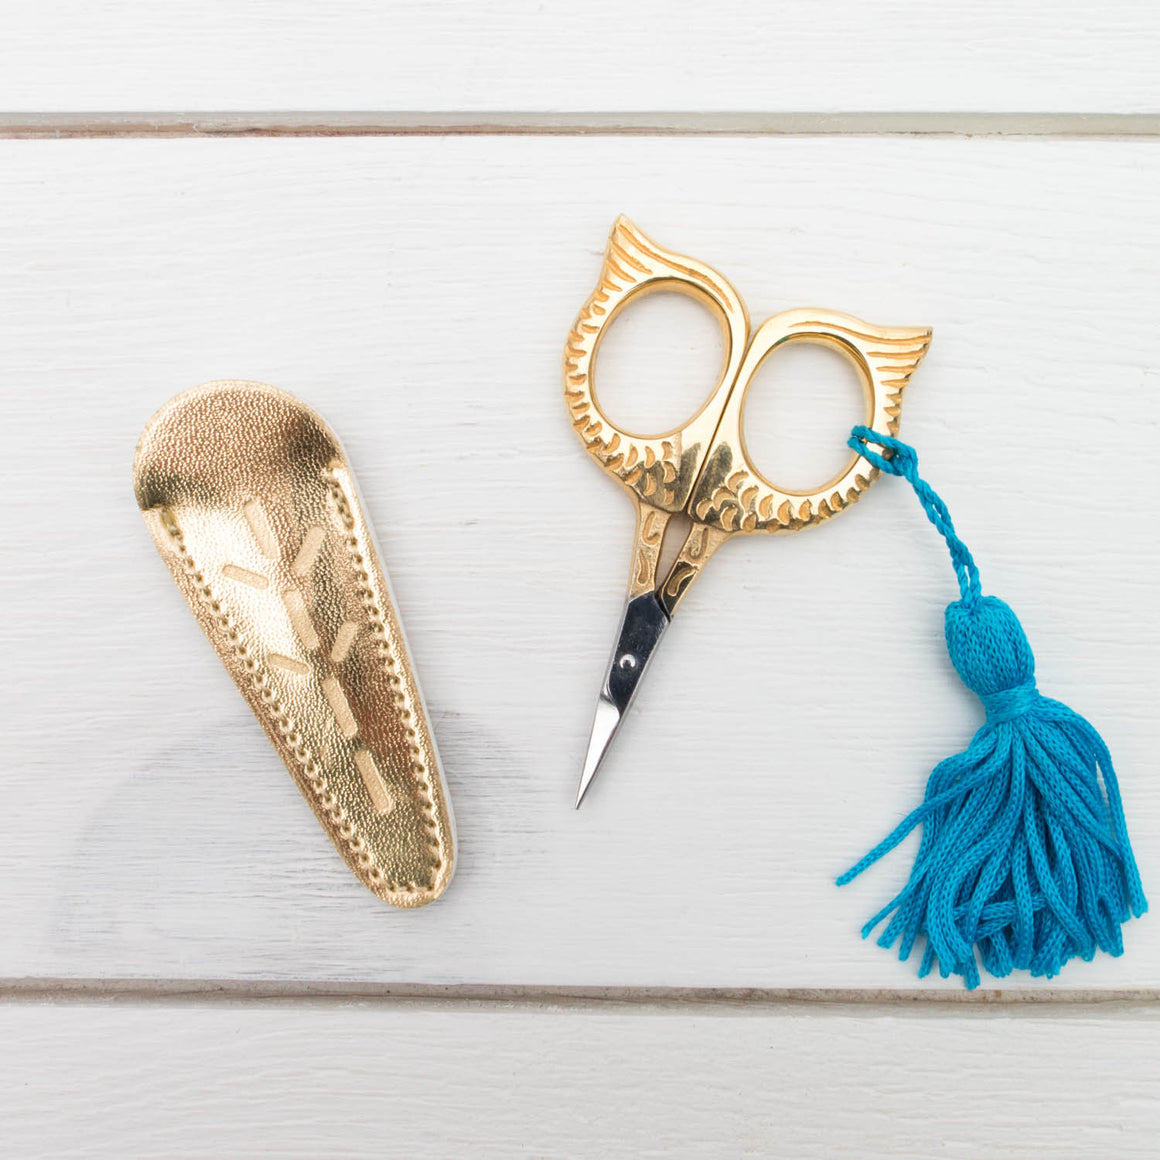 Golden Owl Eye Embroidery Scissors Scissors - Snuggly Monkey